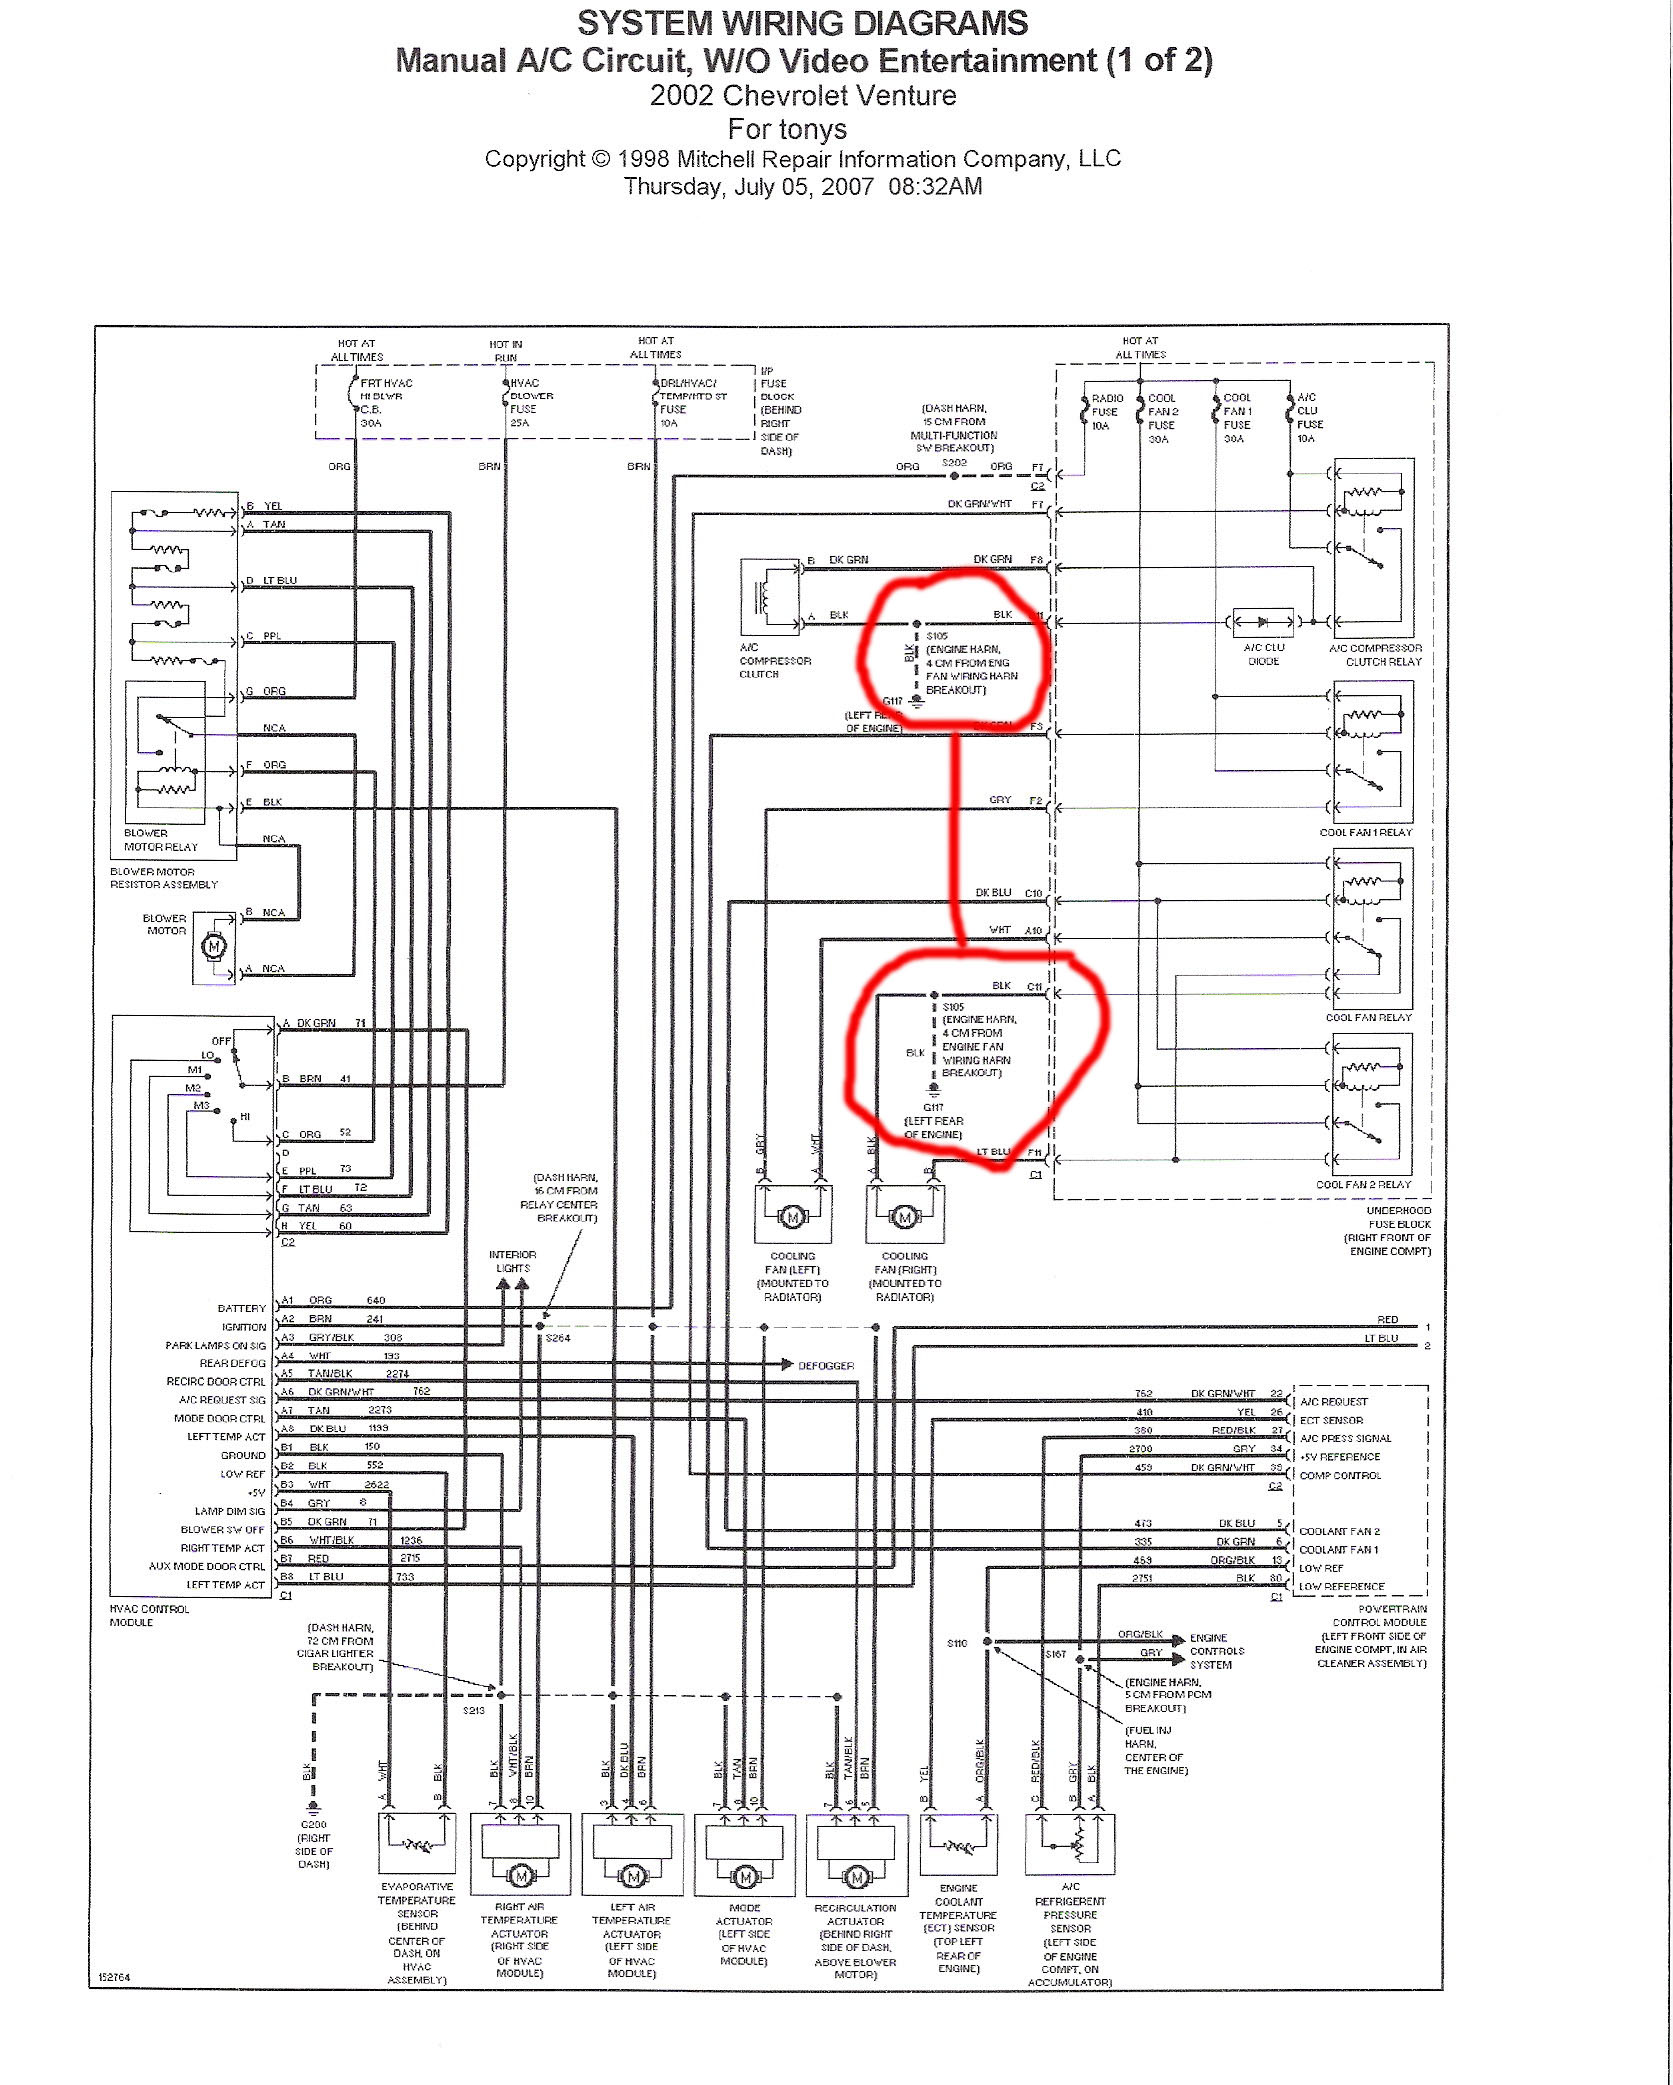 hight resolution of 2001 chevy cavalier cooling fan wiring diagram wiring diagram site 2001 chevy cavalier cooling fan wiring diagram